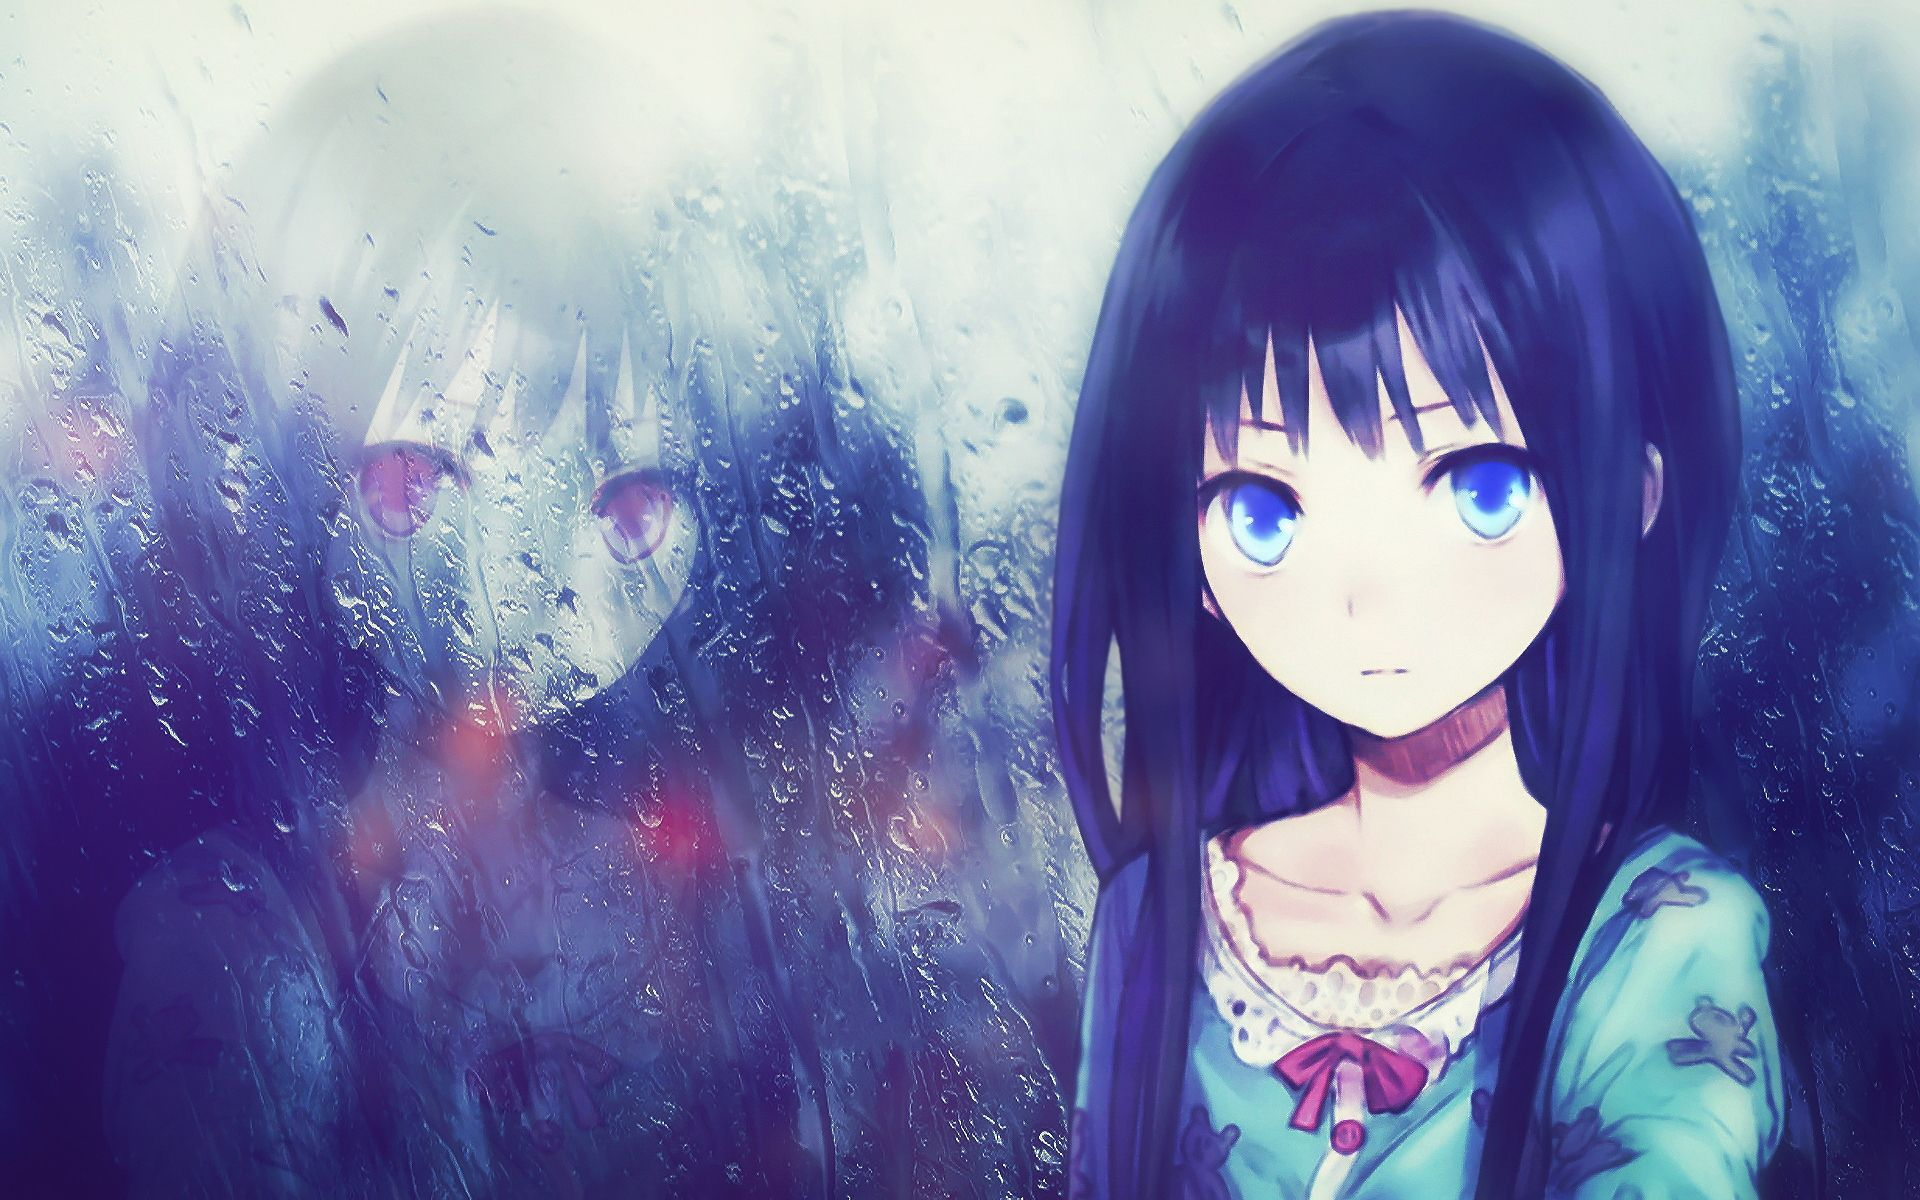 Lonely Anime Girl Wallpapers Top Free Lonely Anime Girl Backgrounds Wallpaperaccess